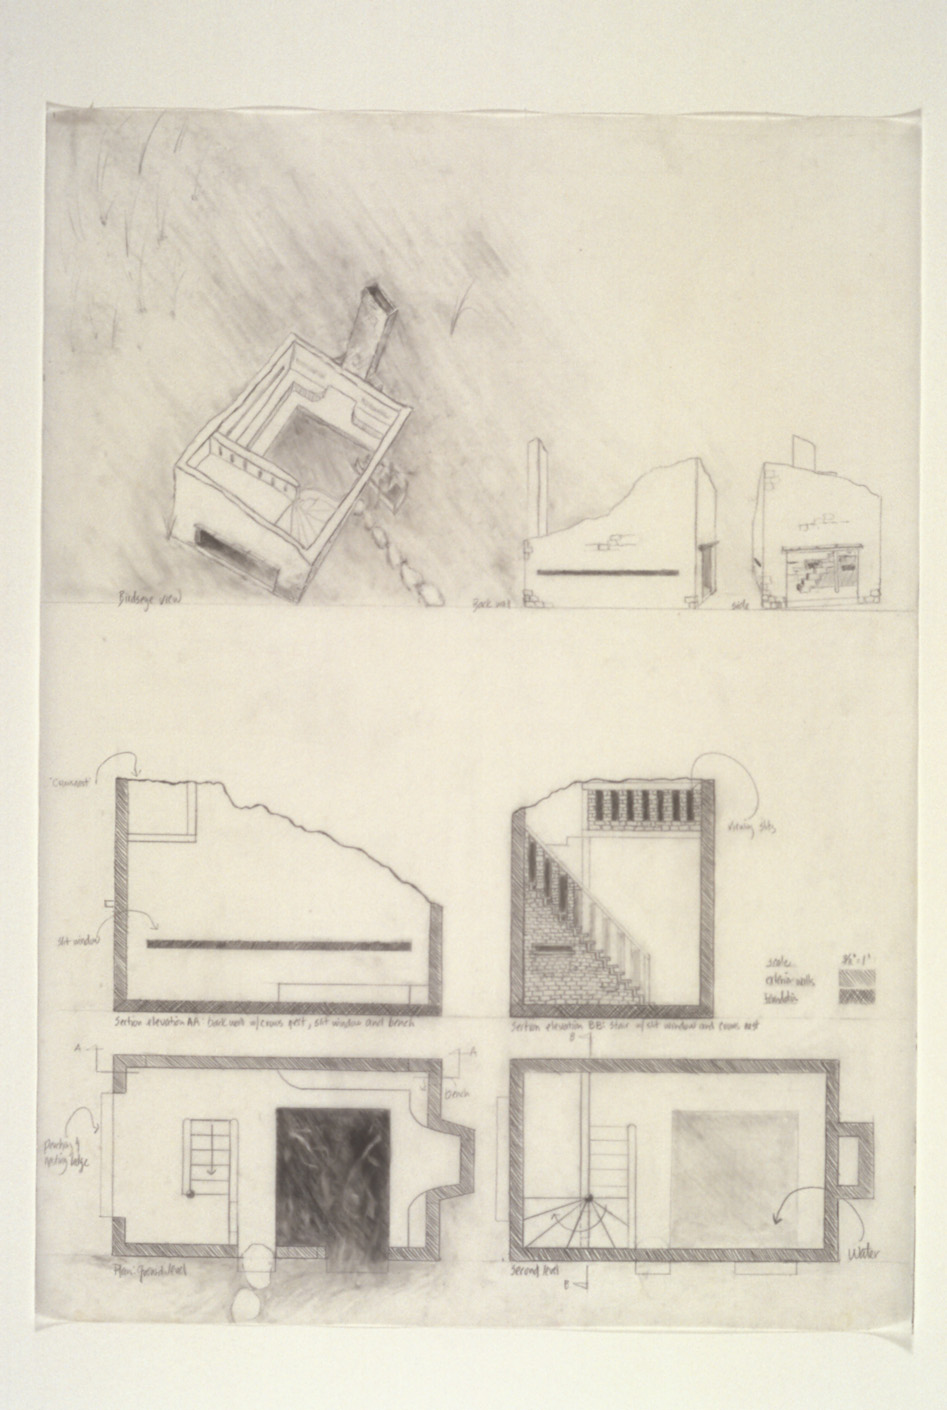 """Blind  Proposal Drawing for Riverfront Heritage Trail, Kansas City, MO, 2001-02  """"Birdseye"""" and Plan Views,graphite on vellum, 26 x 36."""